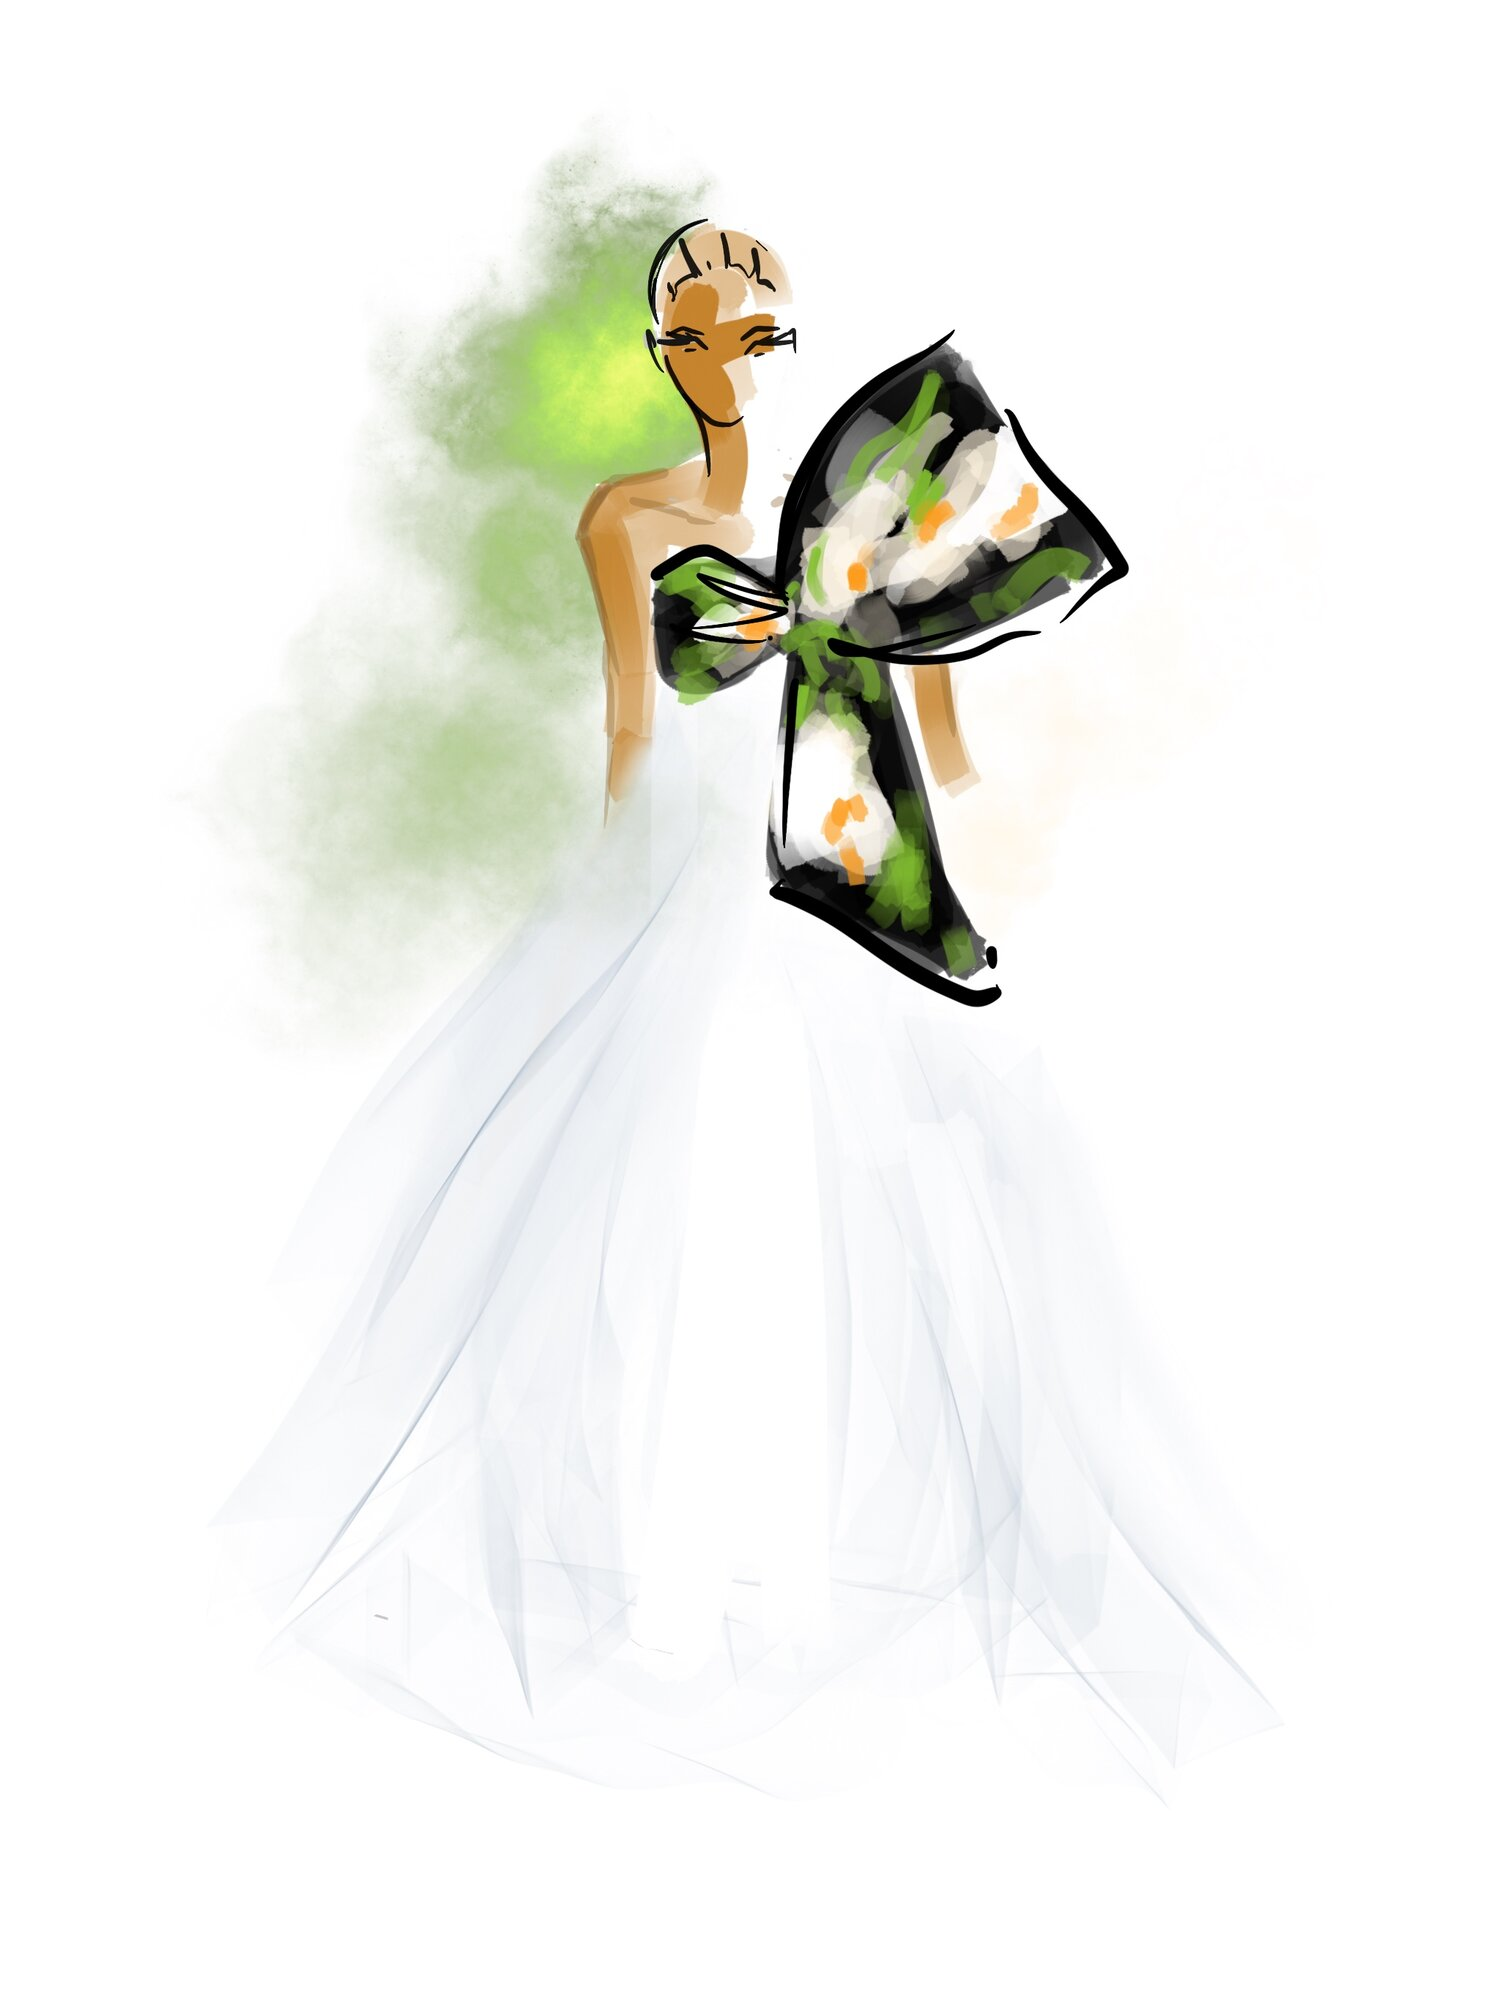 carolina-herrera-03-nyfw-fashion-illustration-by-stephanie-anne.jpg